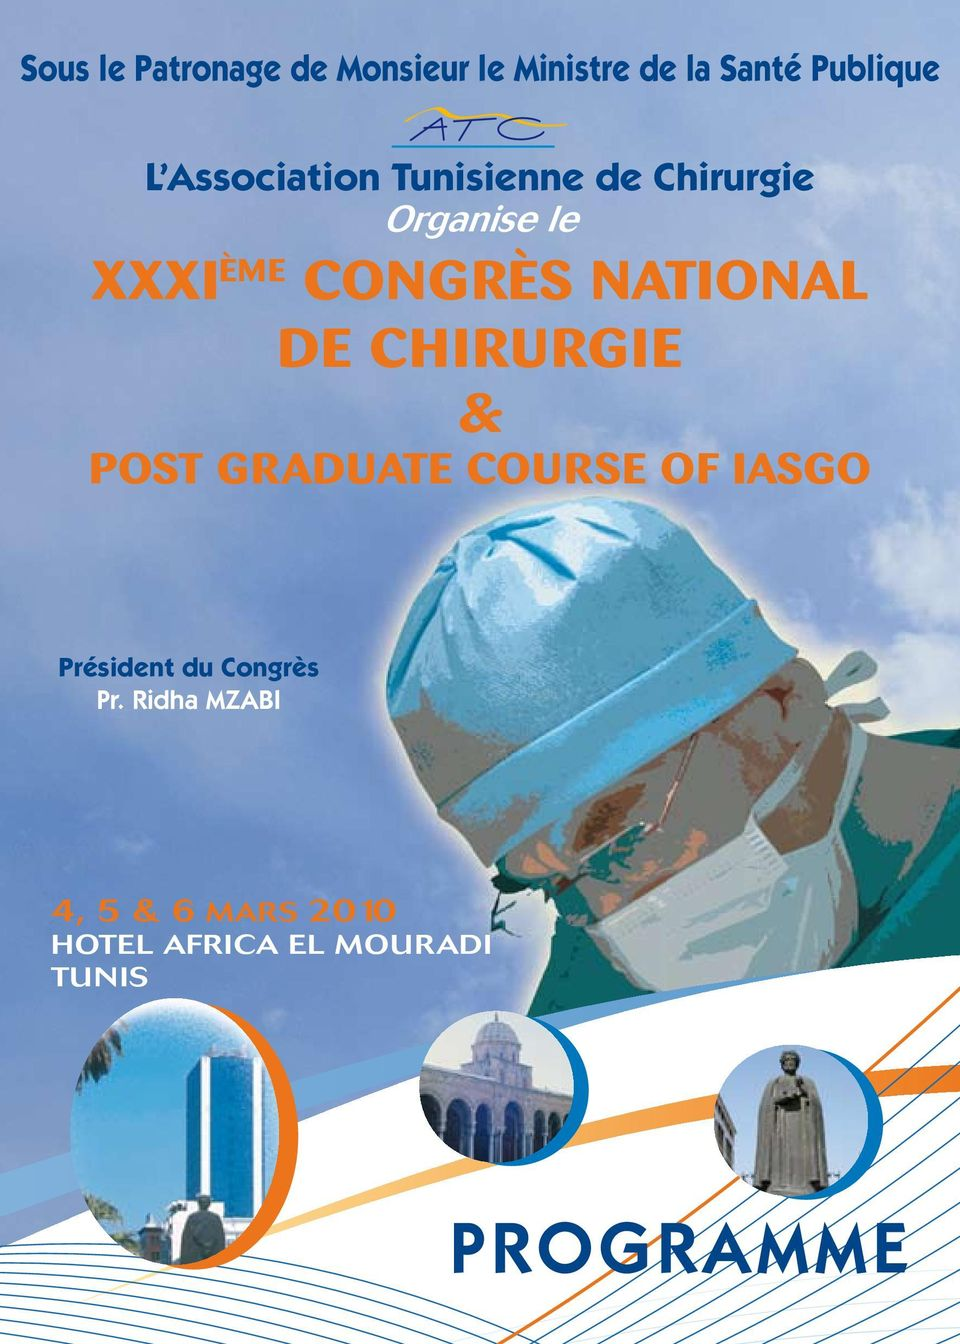 NATIONAL DE CHIRURGIE & POST GRADUATE COURSE OF IASGO Président du